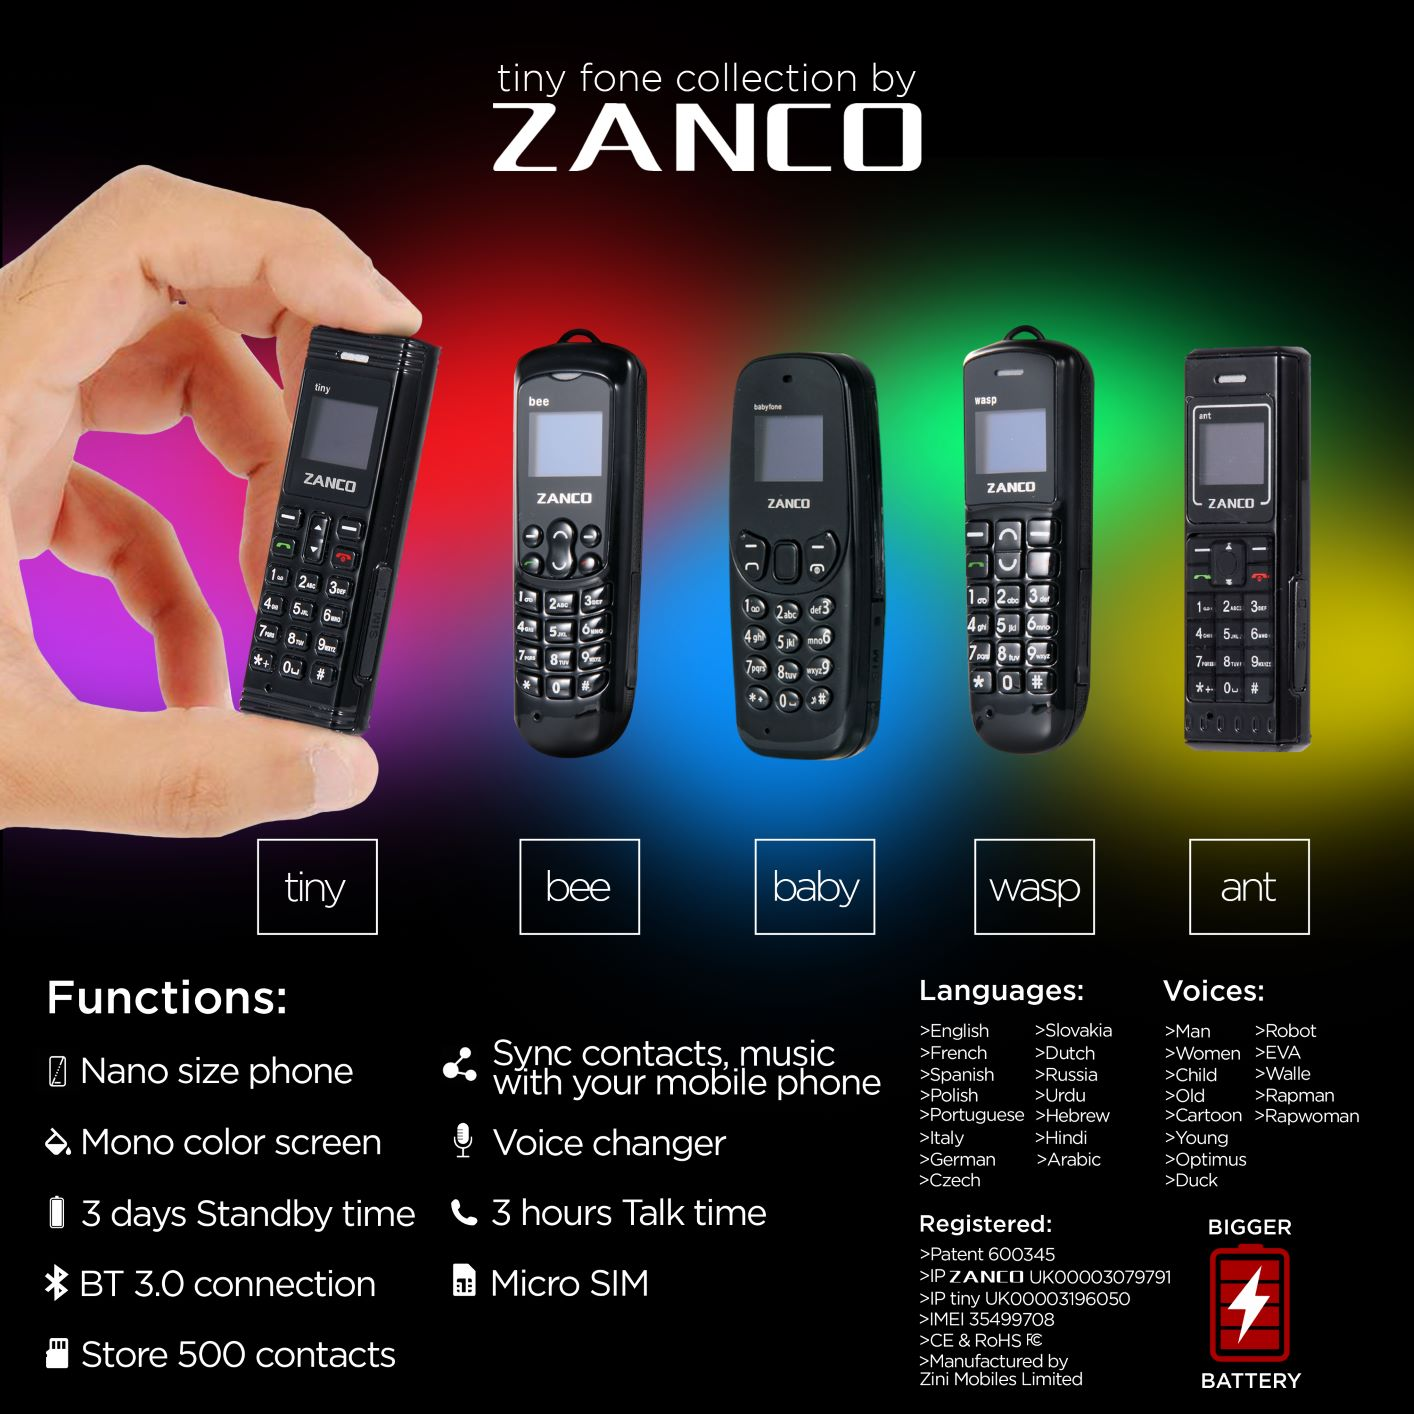 ZANCO x 10 tiny fone collection mixed zanco mini phones cellular phone unlocked cell phone Buy factory direct